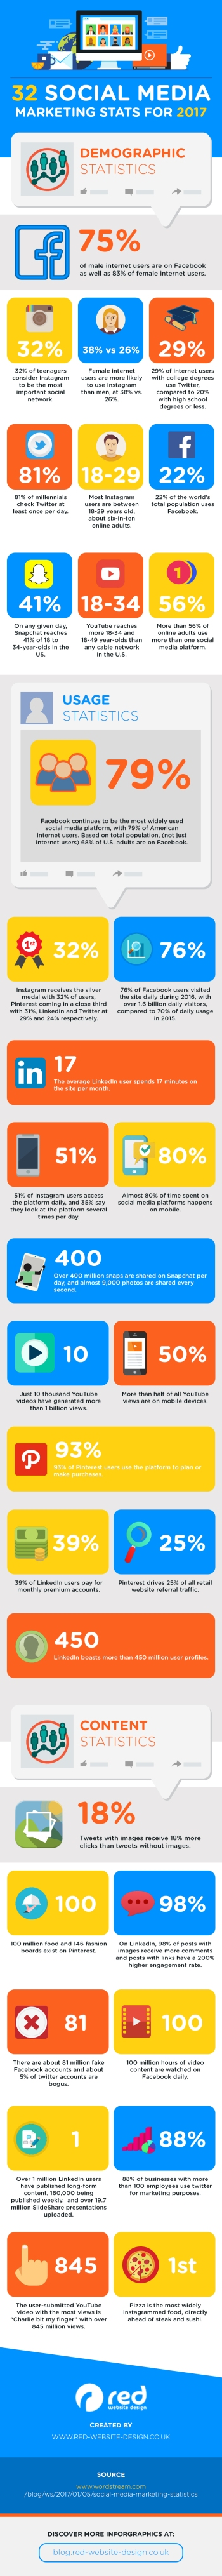 32-Stats-That-Should-Guide-Your-Social-Media-Marketing-Strategy-in-2017-1